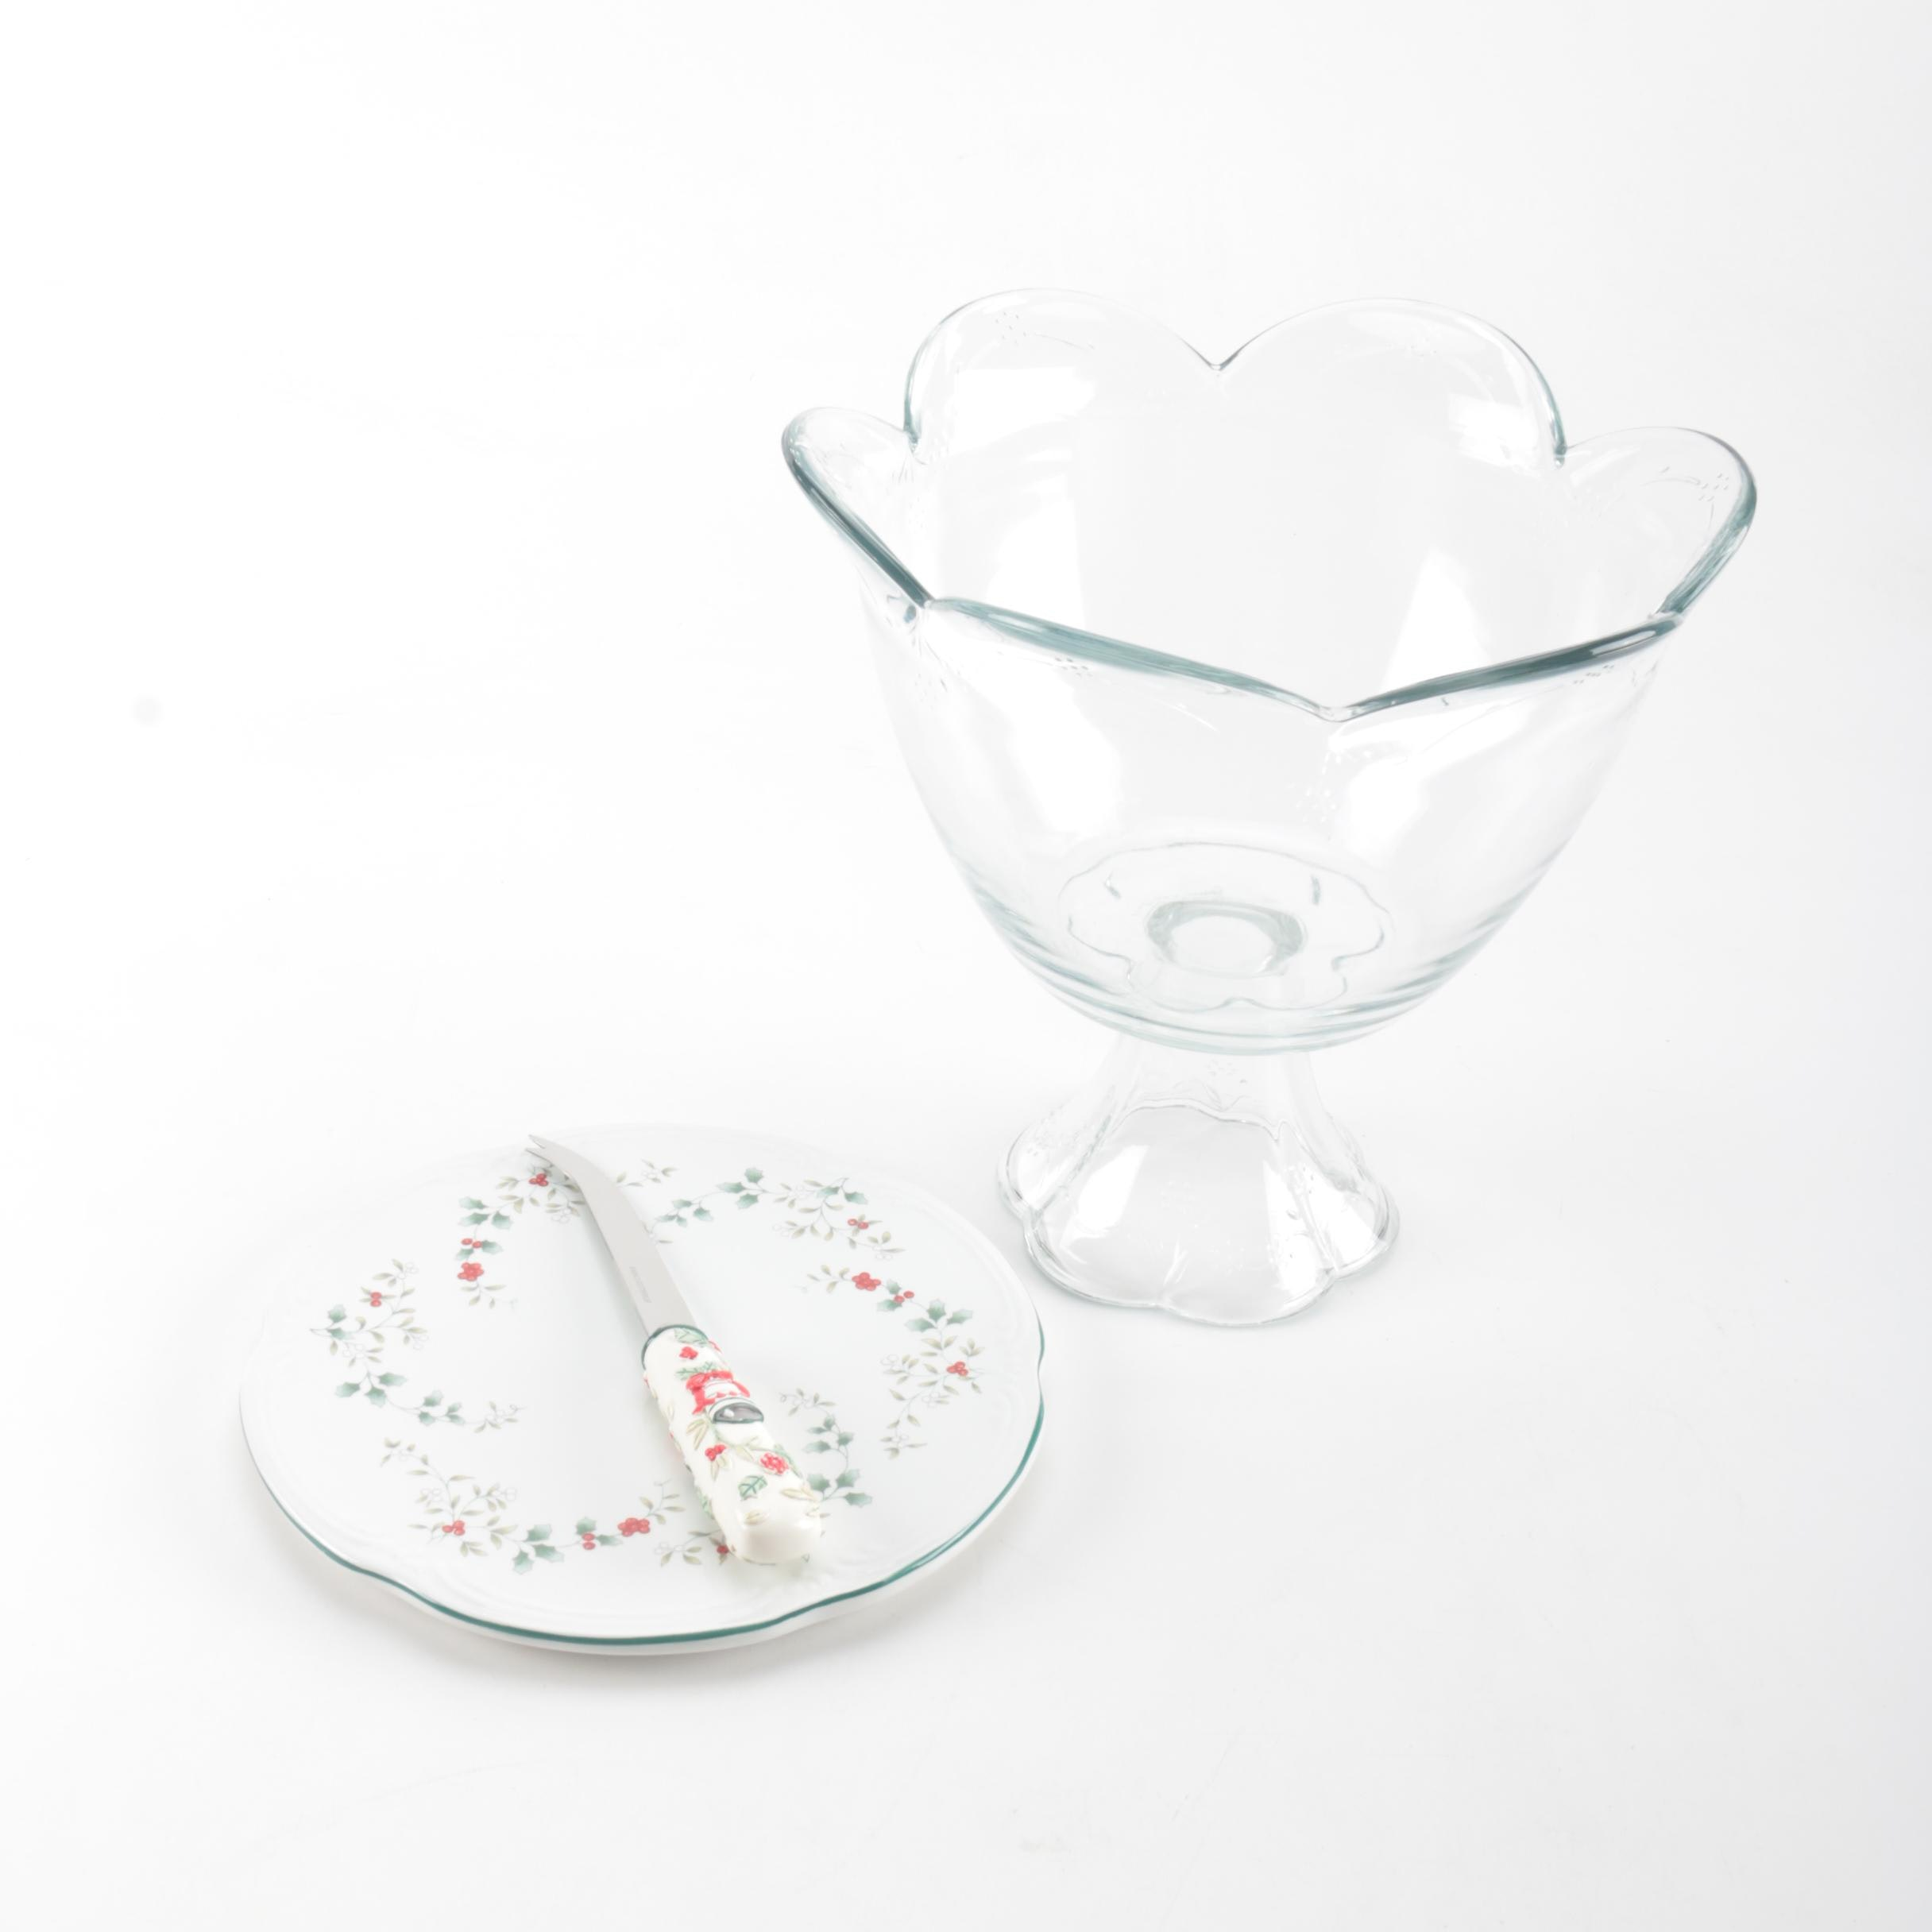 Glass Compote Bowl With Pfaltzgraff Plate and Knife